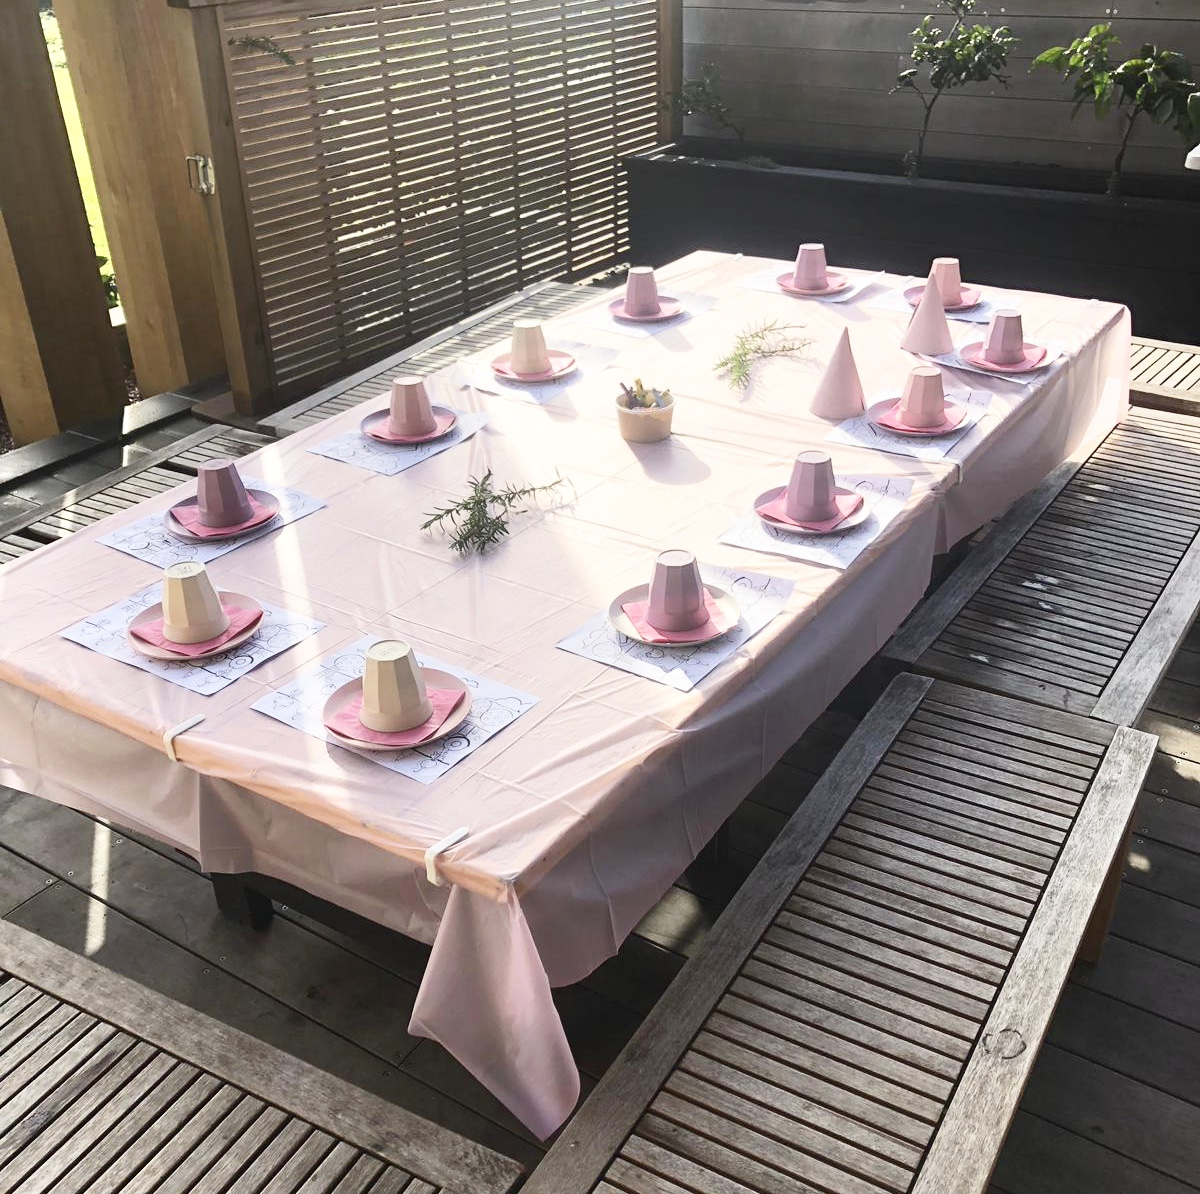 Example of pink themed table set up for 12 children